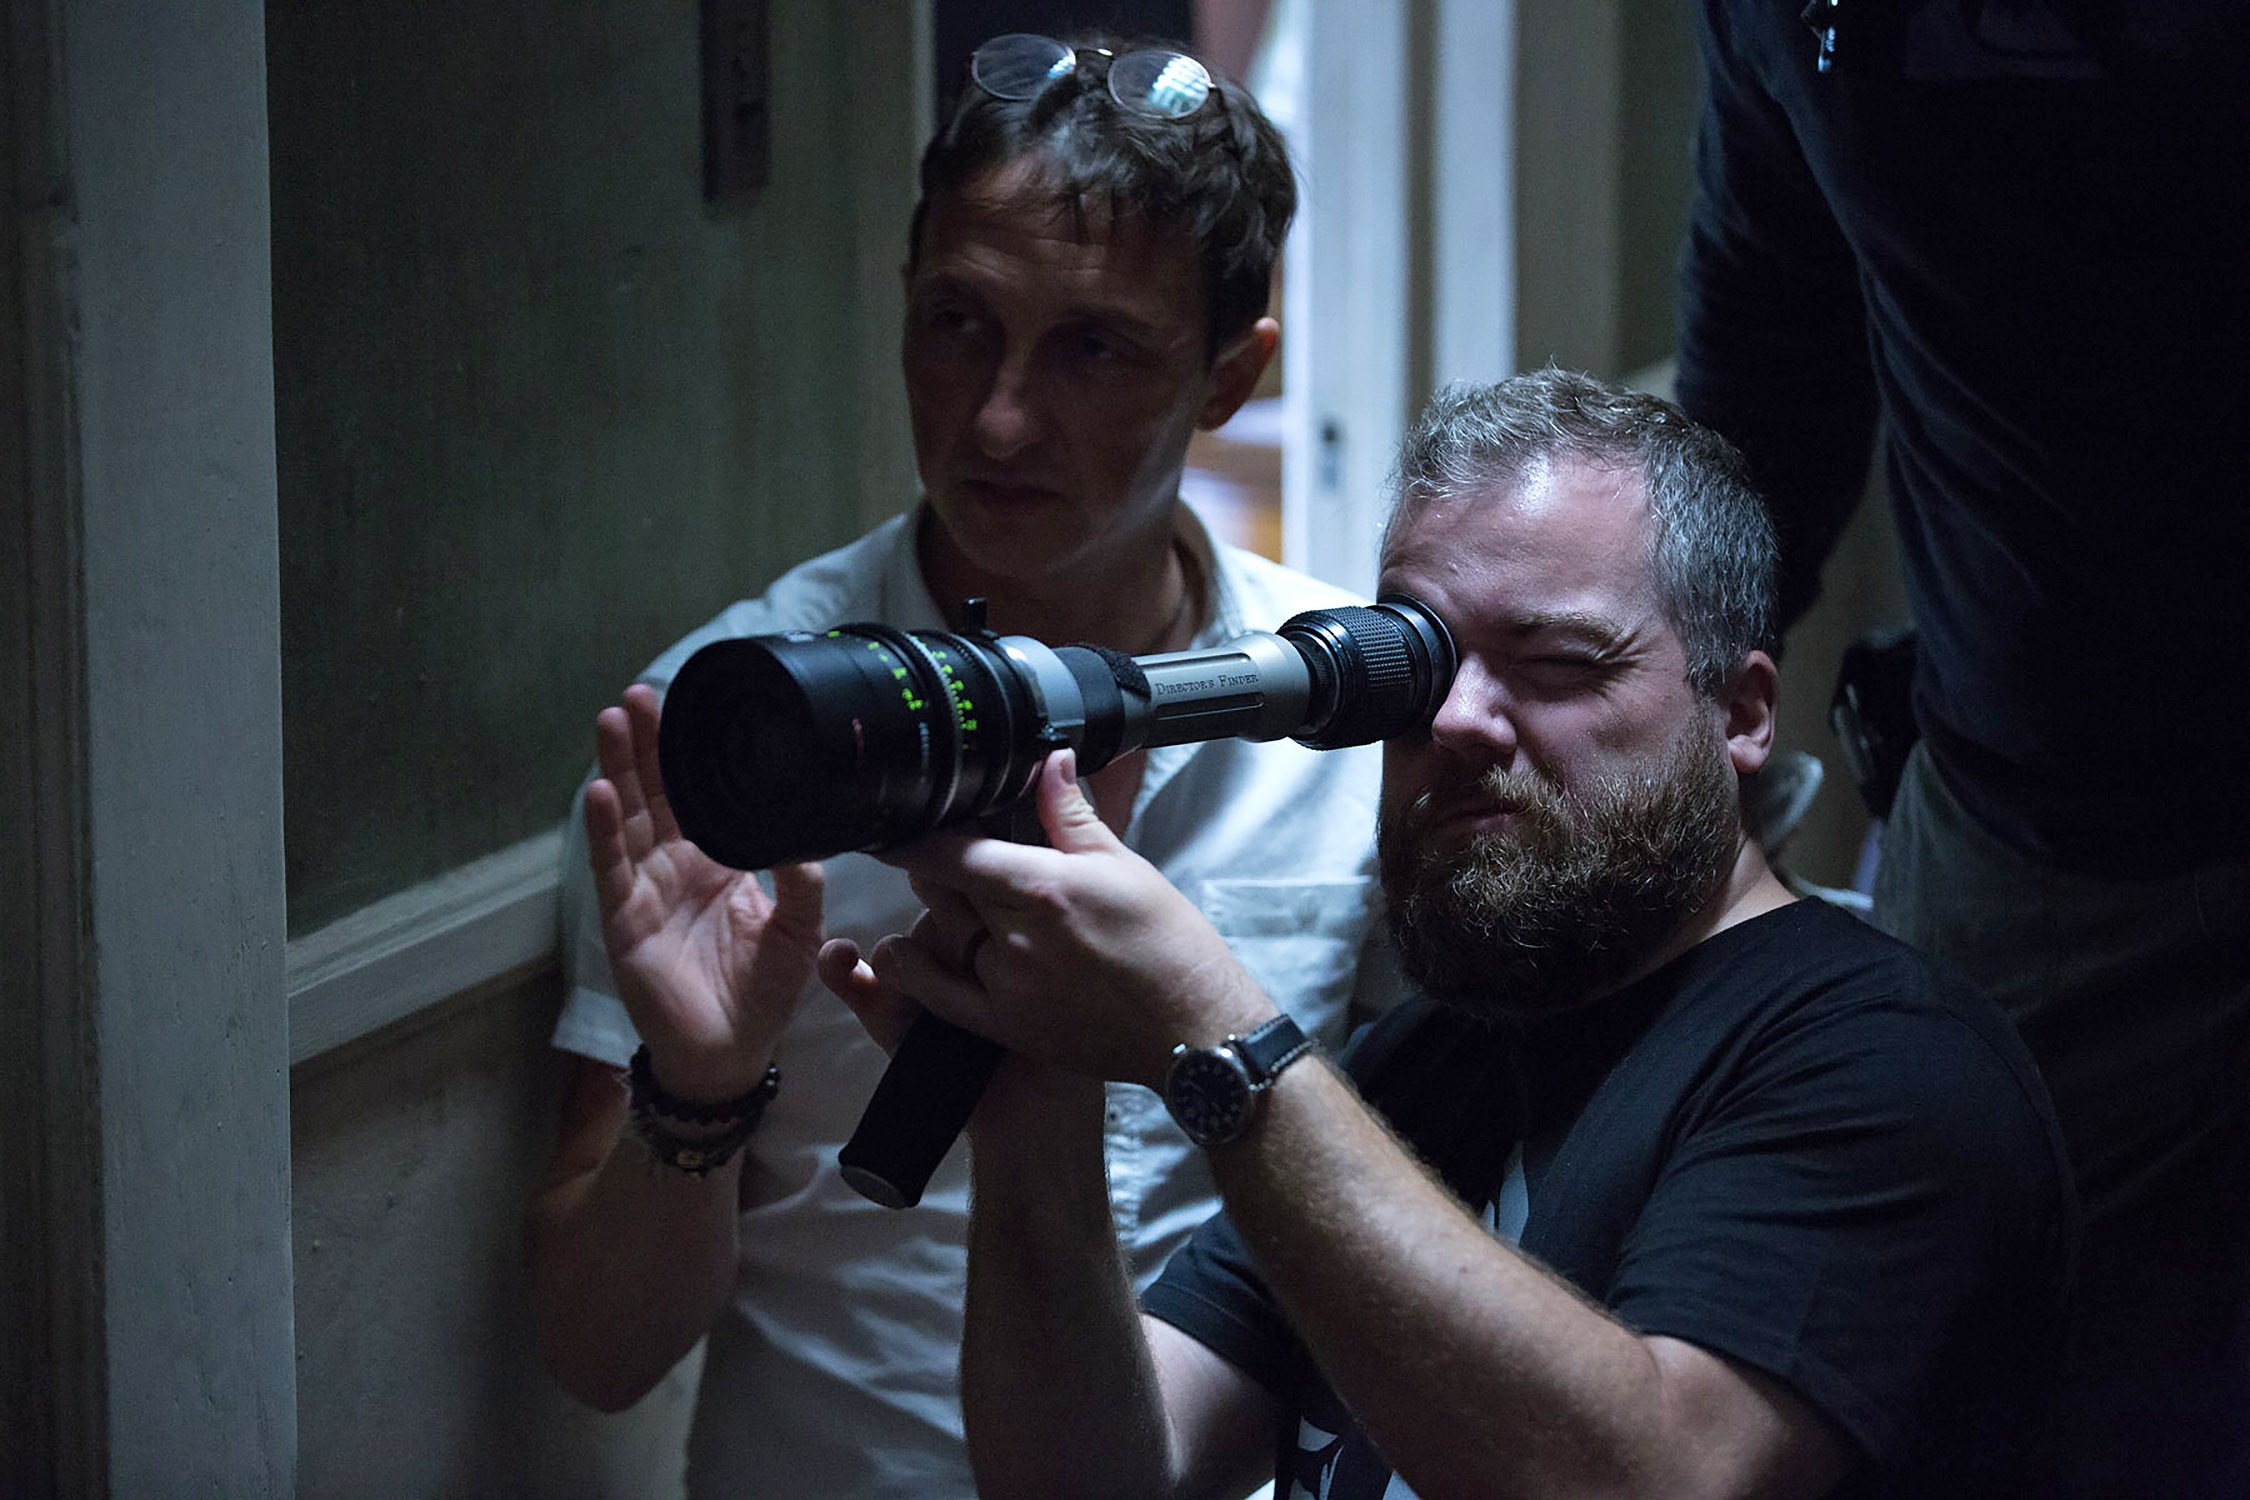 annabellemaxime 1 - Exclusive: Cinematographer Maxime Alexandre on Shooting Annabelle: Creation, The Nun, and More!